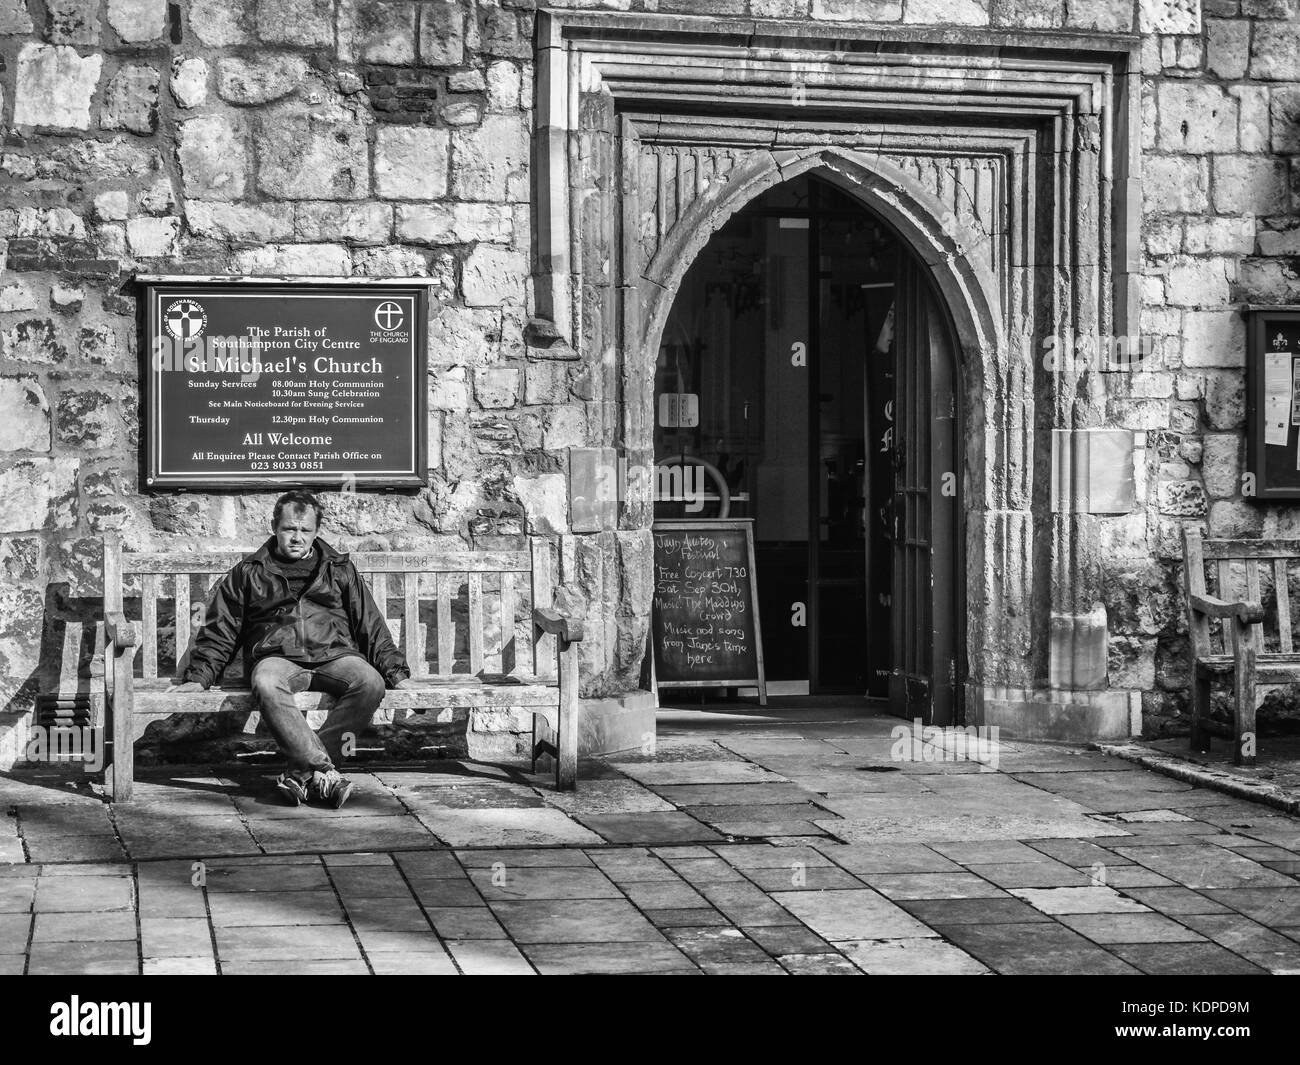 Man sitting by the West Door of St Michael's Church, Southampton, England, UK. - Stock Image